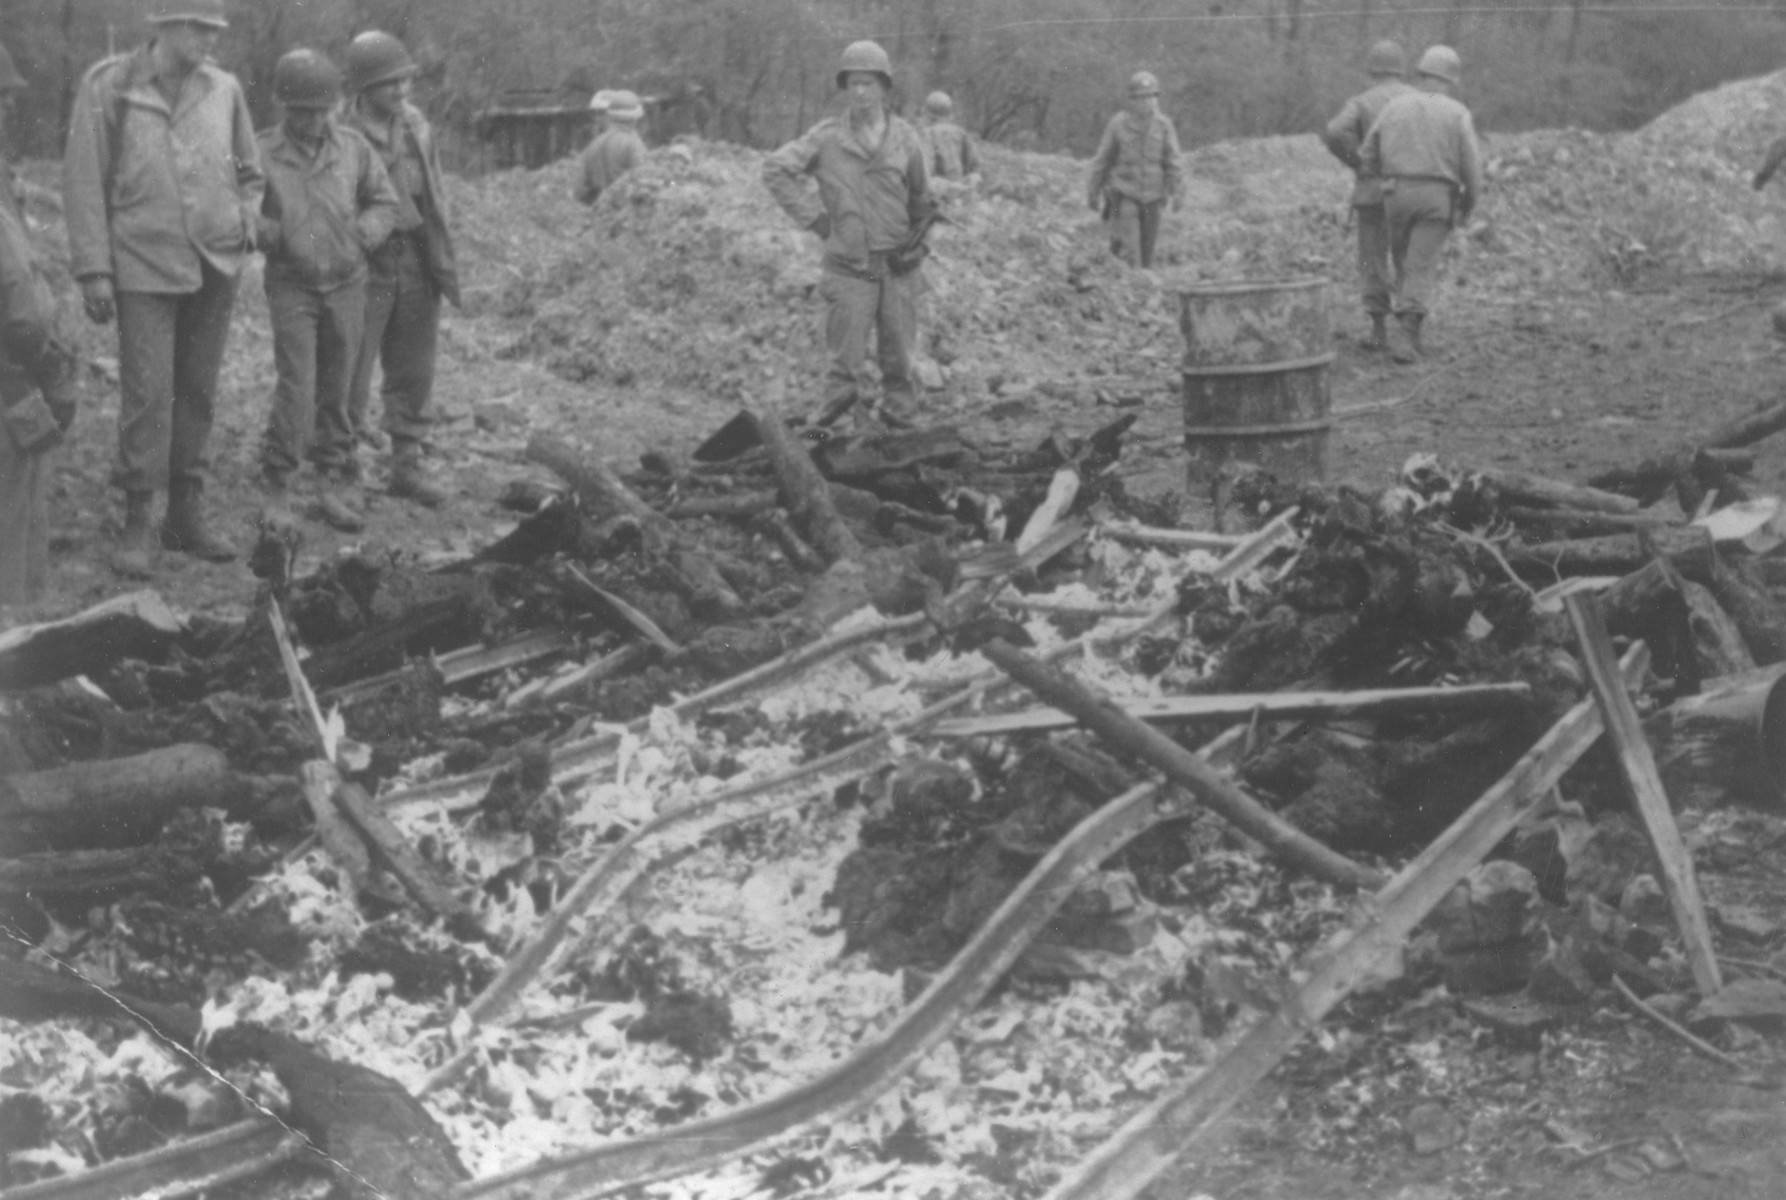 American soldiers on an inspection tour of the Ohrdruf concentration camp examine the remains of a pyre used to burn corpses.